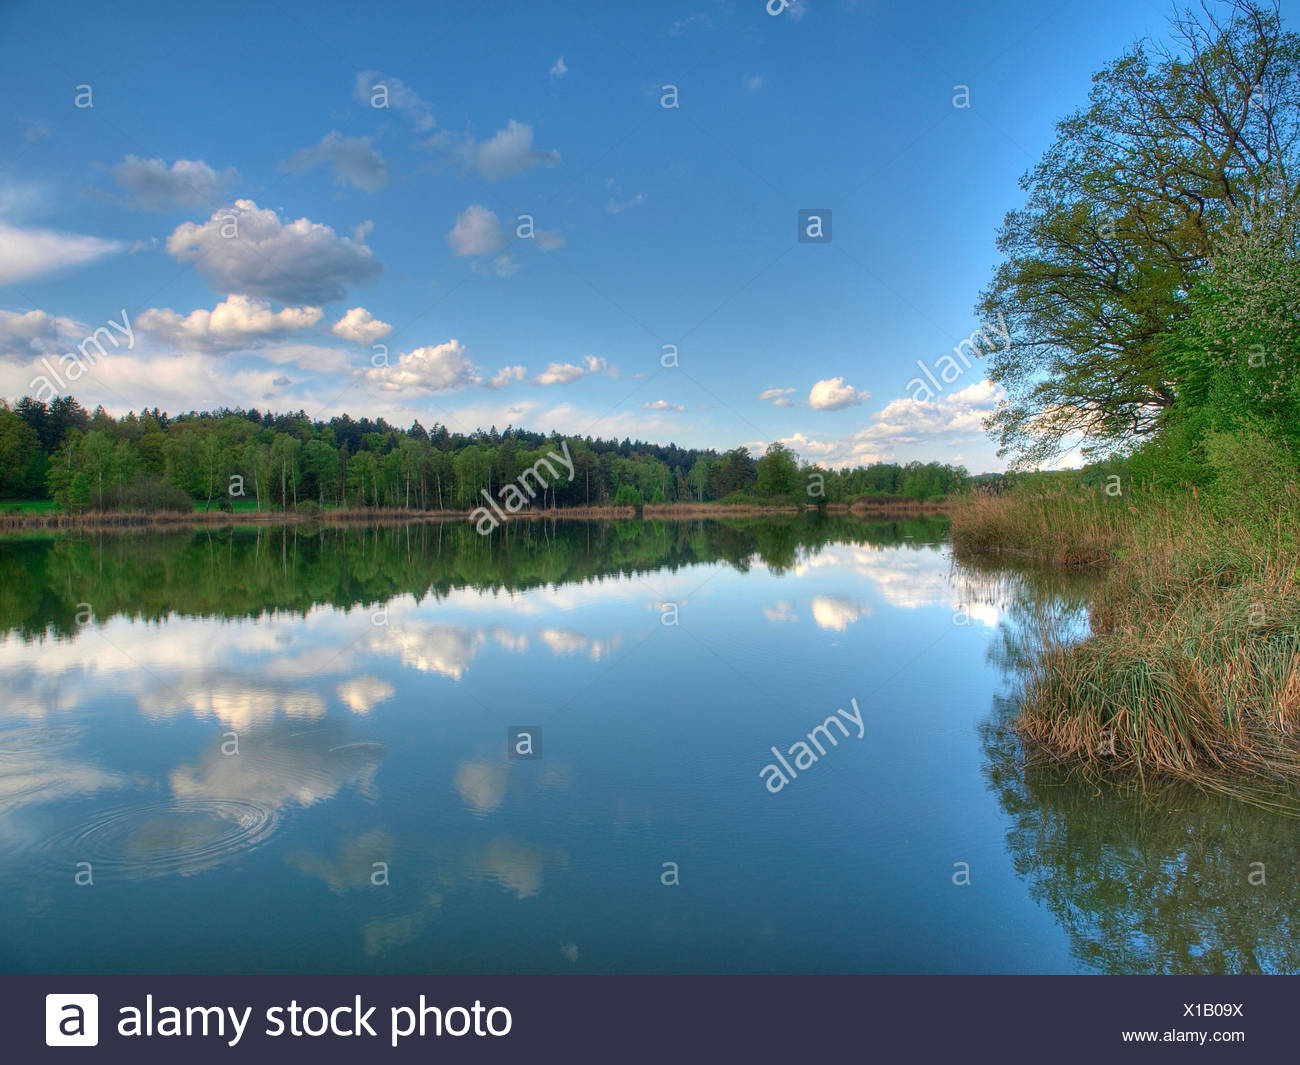 Blue, spring, himmel, idyl, lake, wood, forest, water, clouds, canton Zurich, Switzerland, Husemersee, lake, Ossingen, - Stock Image